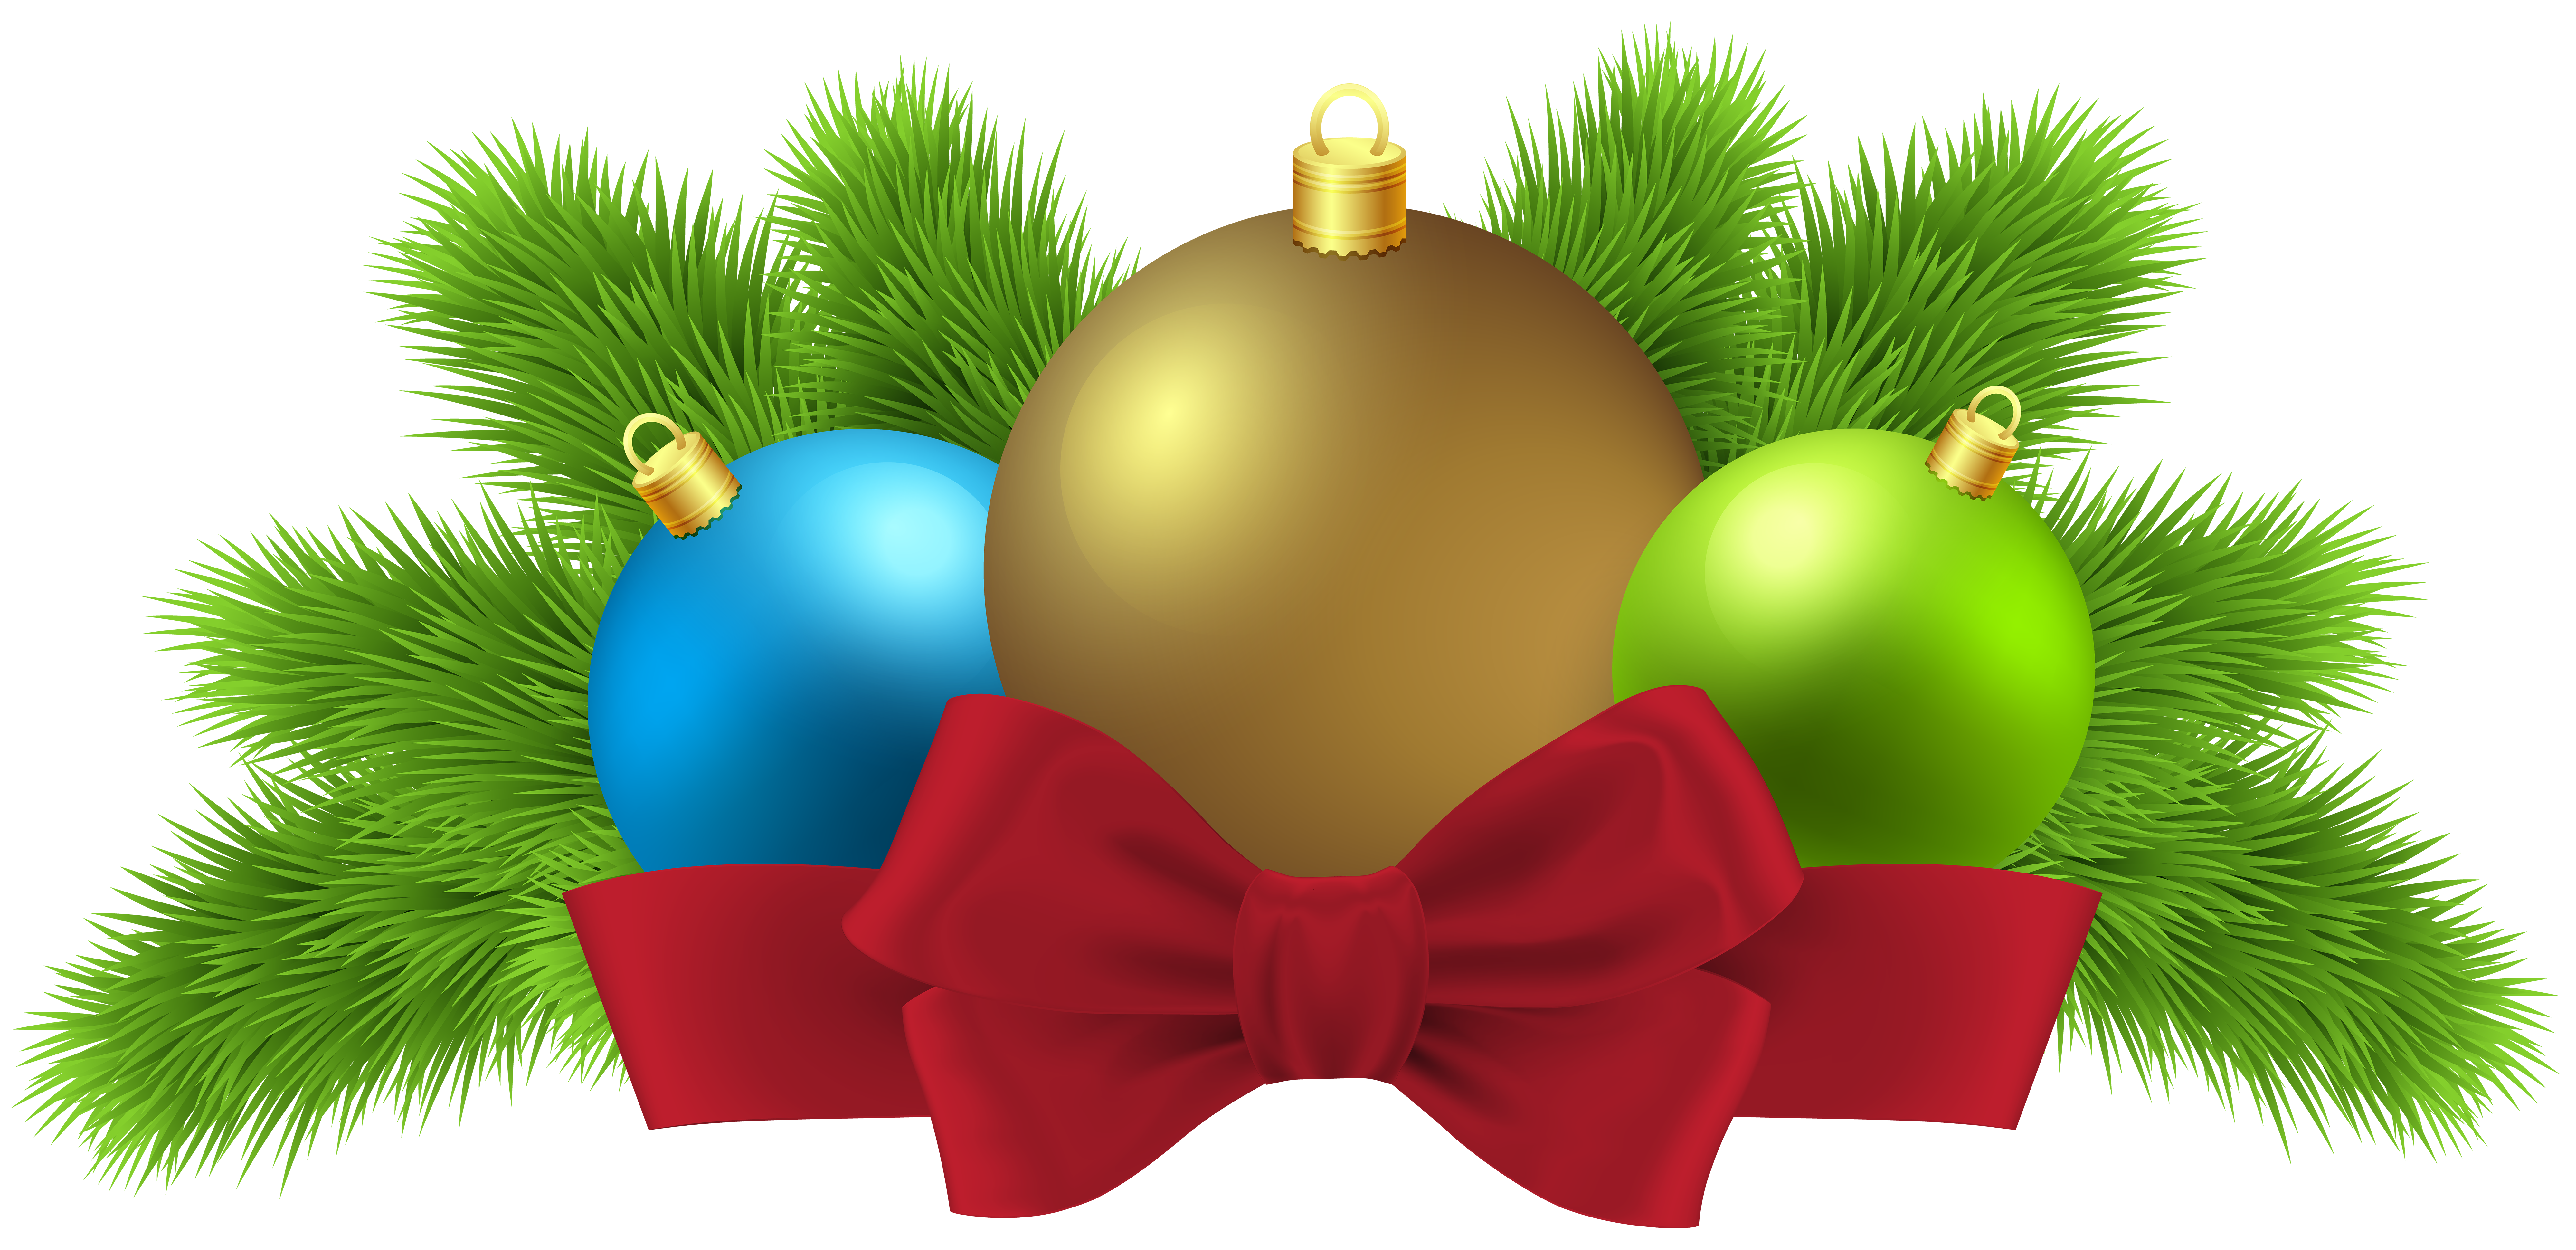 Christmas tree on car clipart png royalty free library Christmas Balls Deco PNG Clip Art Image | Gallery Yopriceville ... png royalty free library